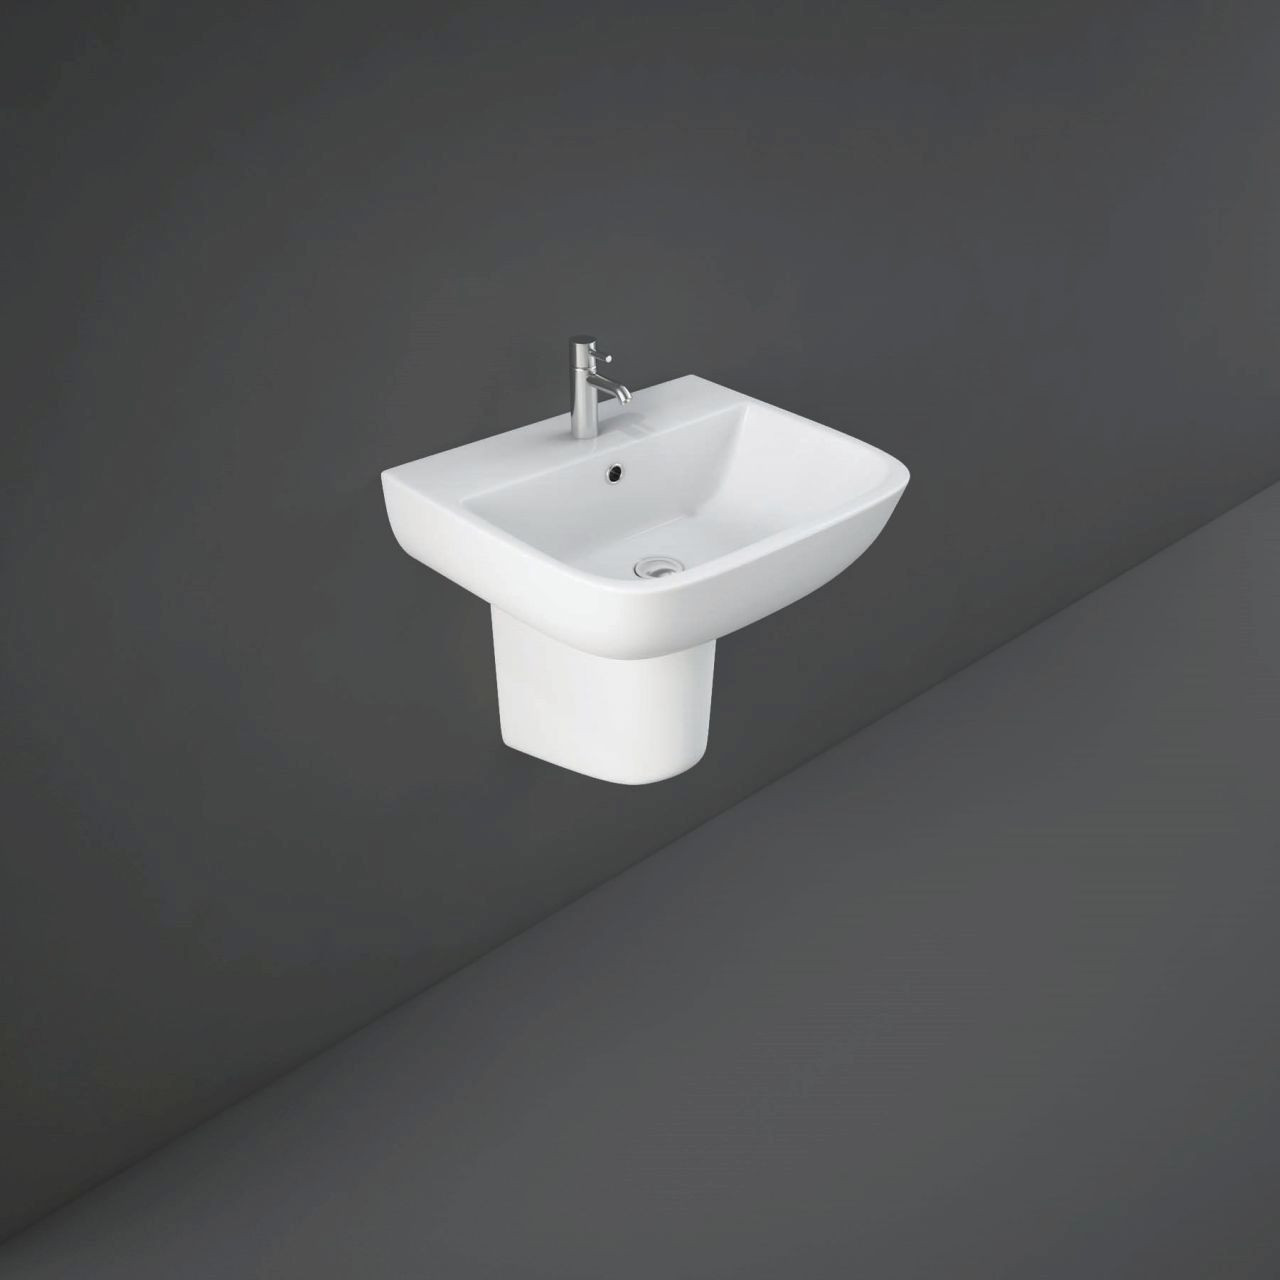 RAK Series 600 520mm Basin with 2 Tap Holes and Half Pedestal